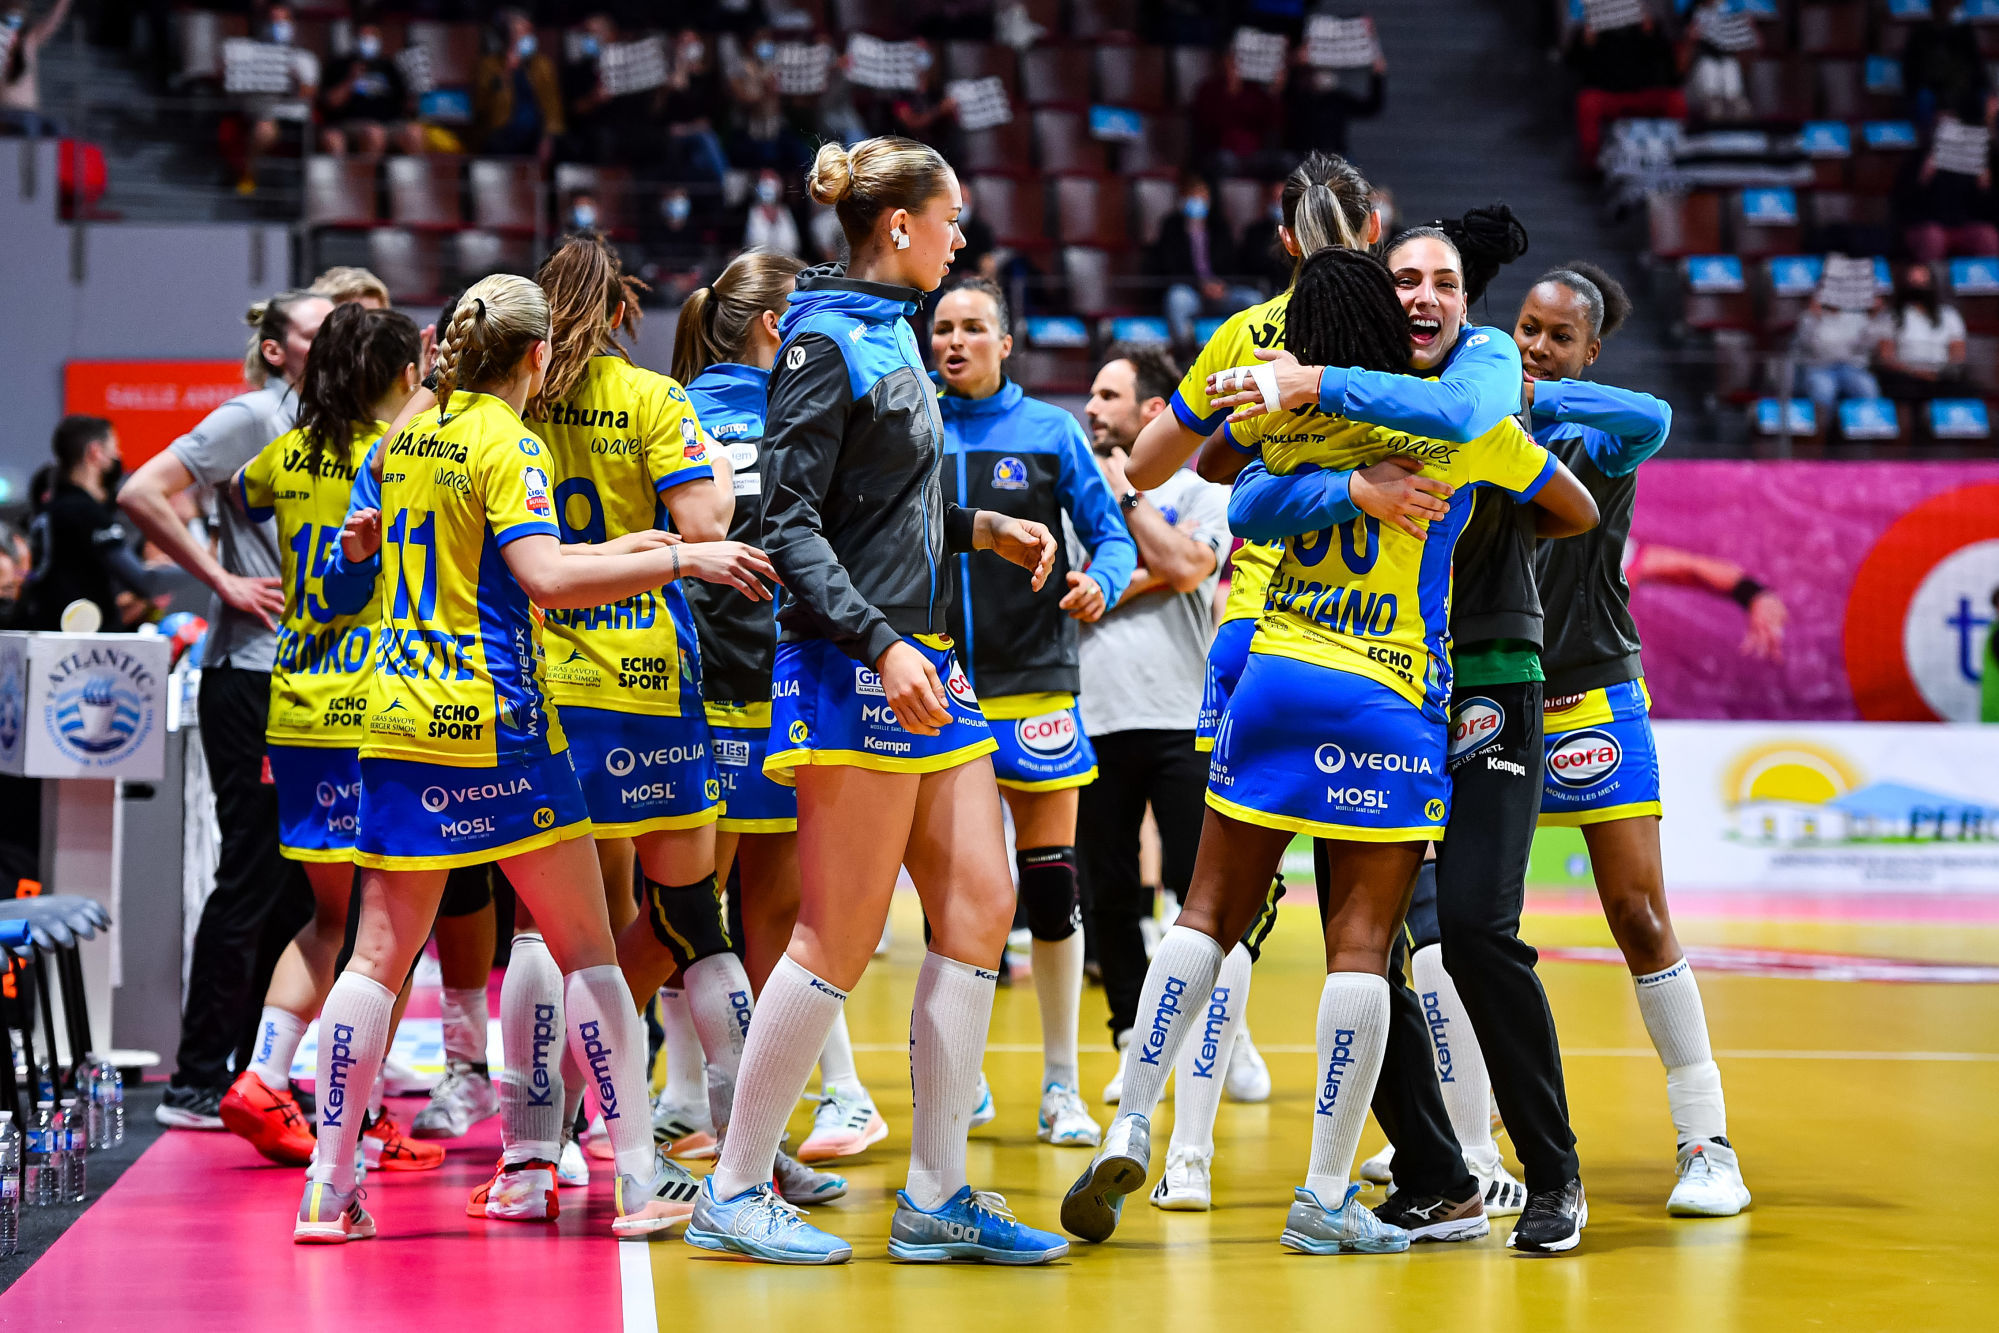 Team of Metz prior to the women's Ligue Butagaz Energie final match between Brest and Metz at Brest Arena on May 23, 2021 in Brest, France. (Photo by Baptiste Fernandez/Icon Sport) - --- - Brest (France)